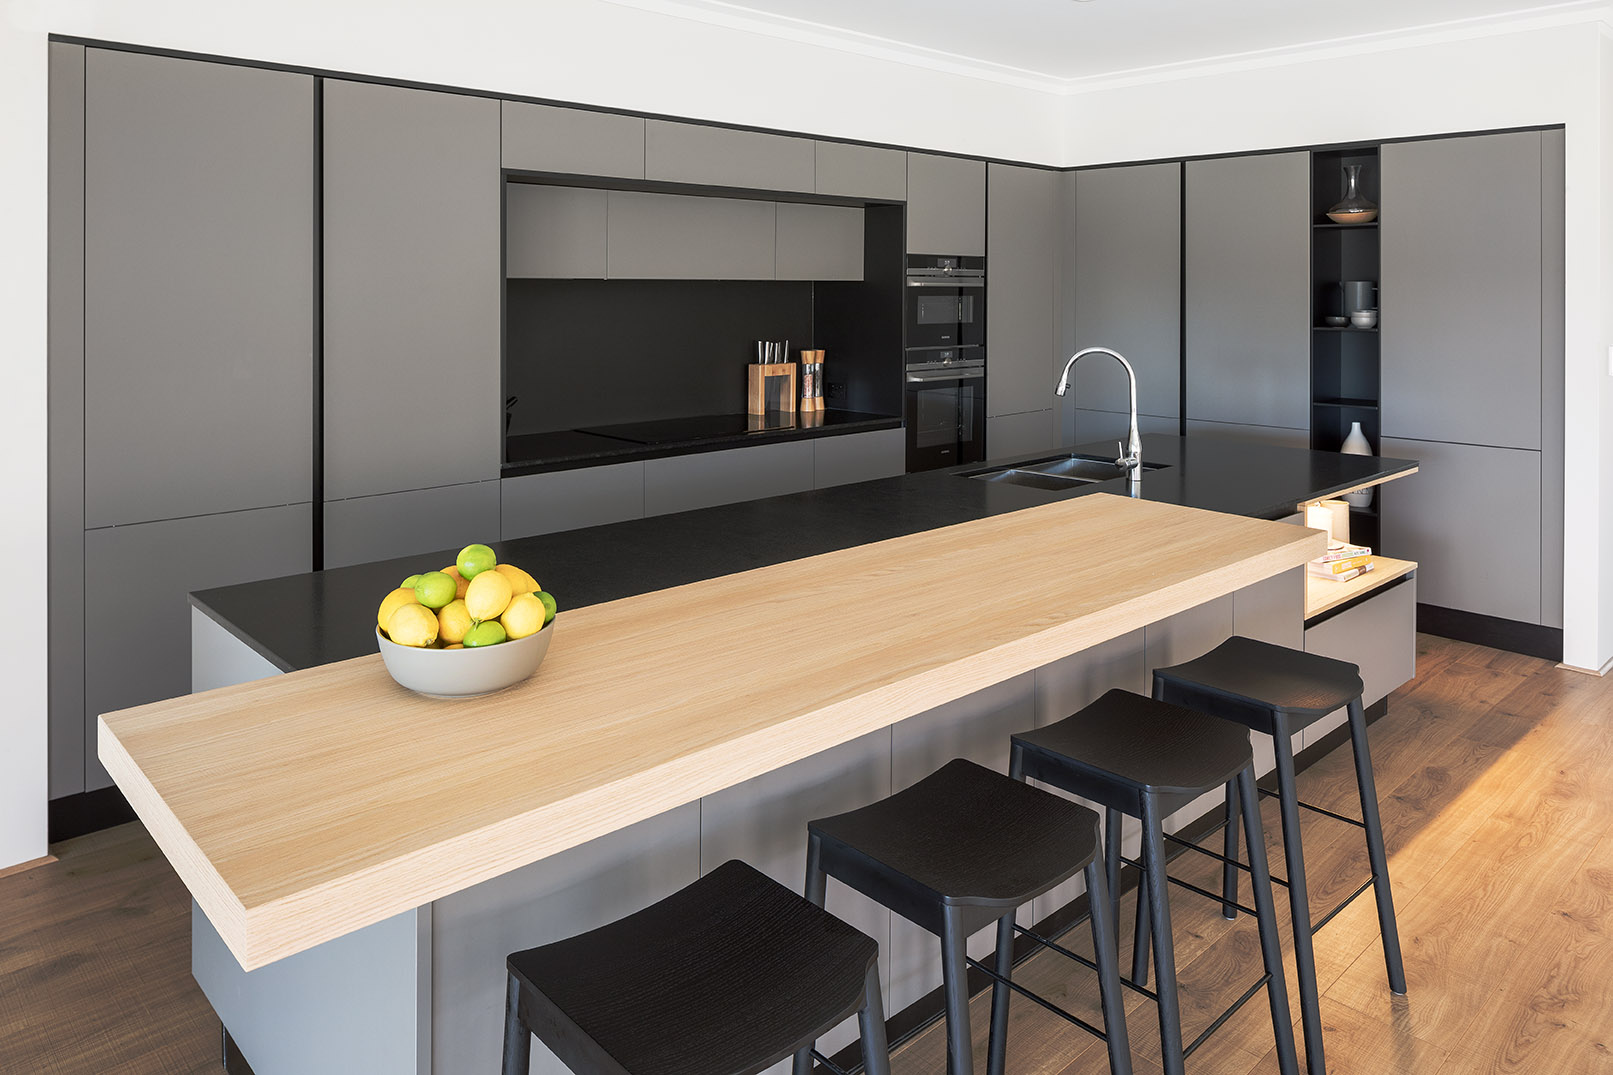 Stylish finish, natural materials: a centrepiece kitchen design